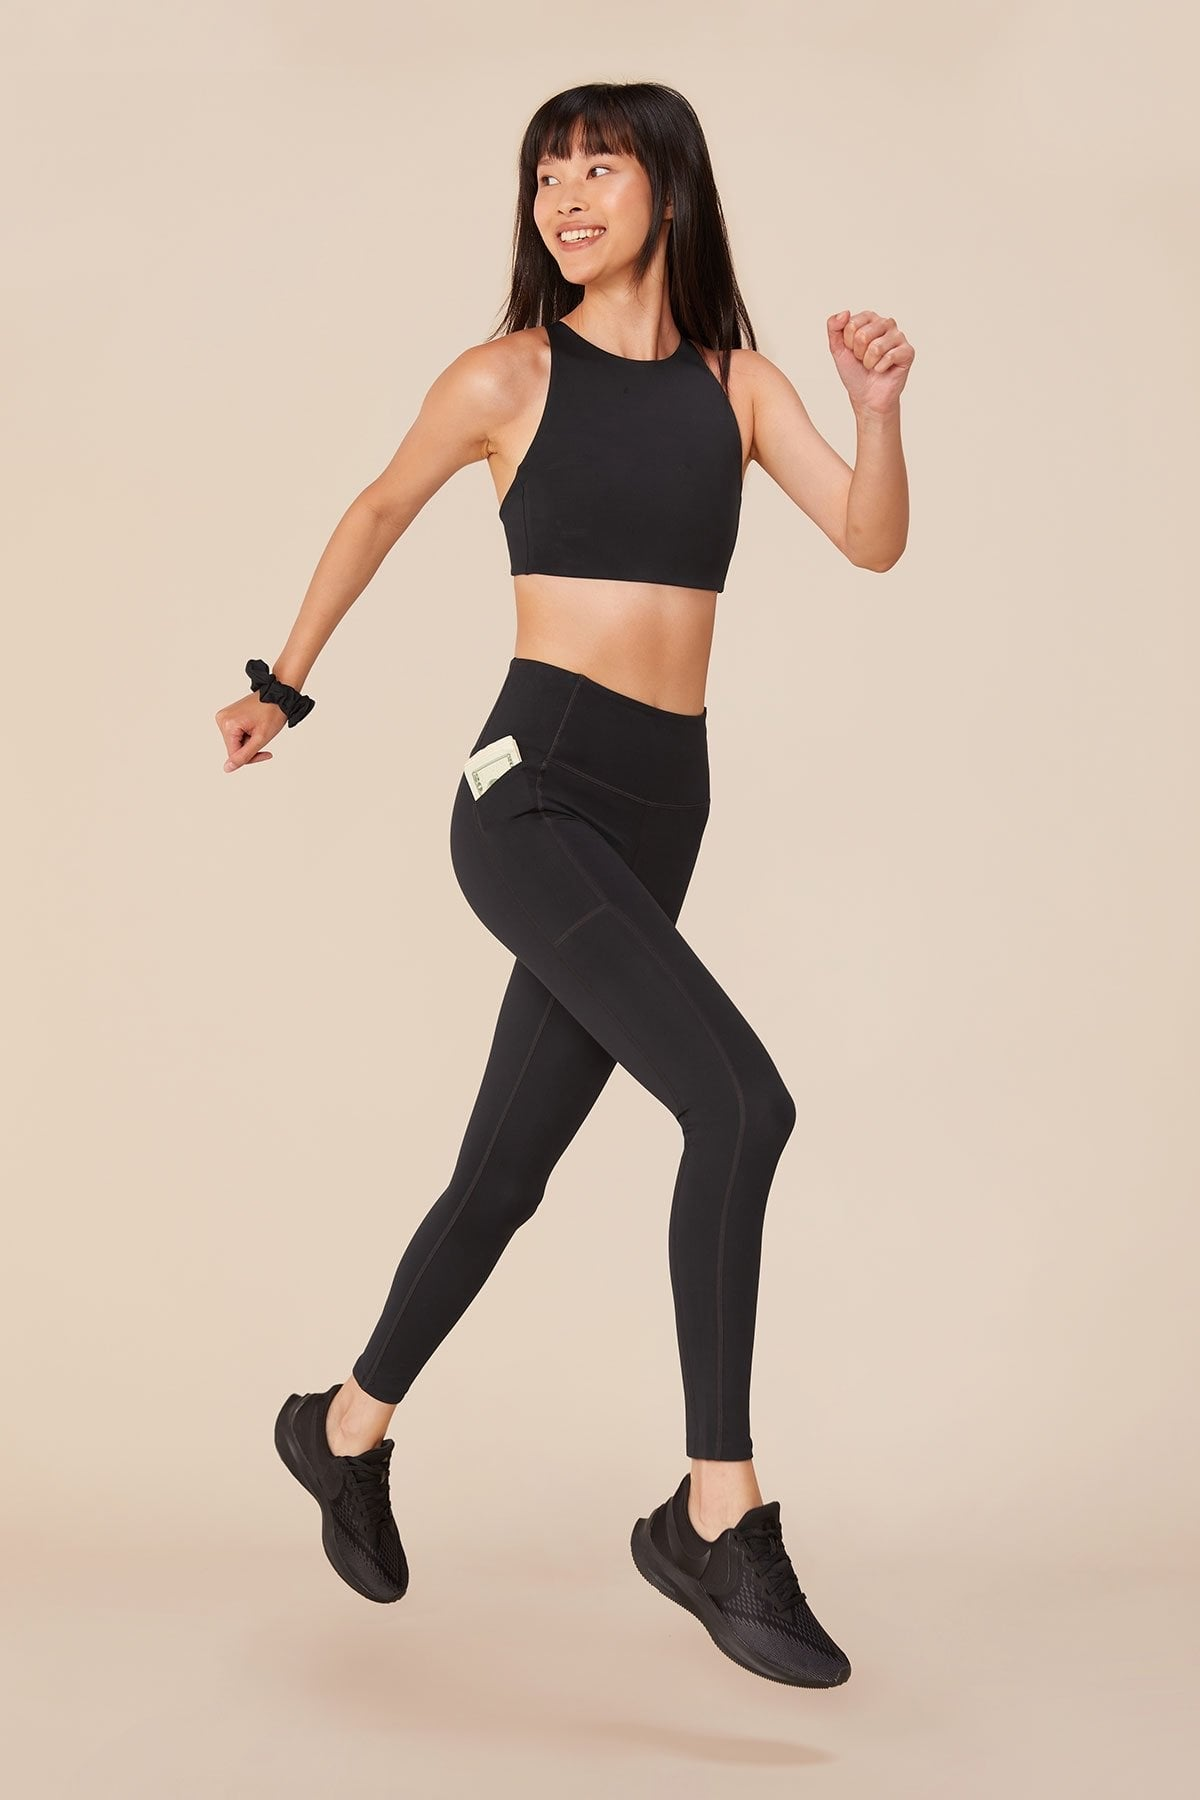 High Rise Compressive Pocket Legging 28.5